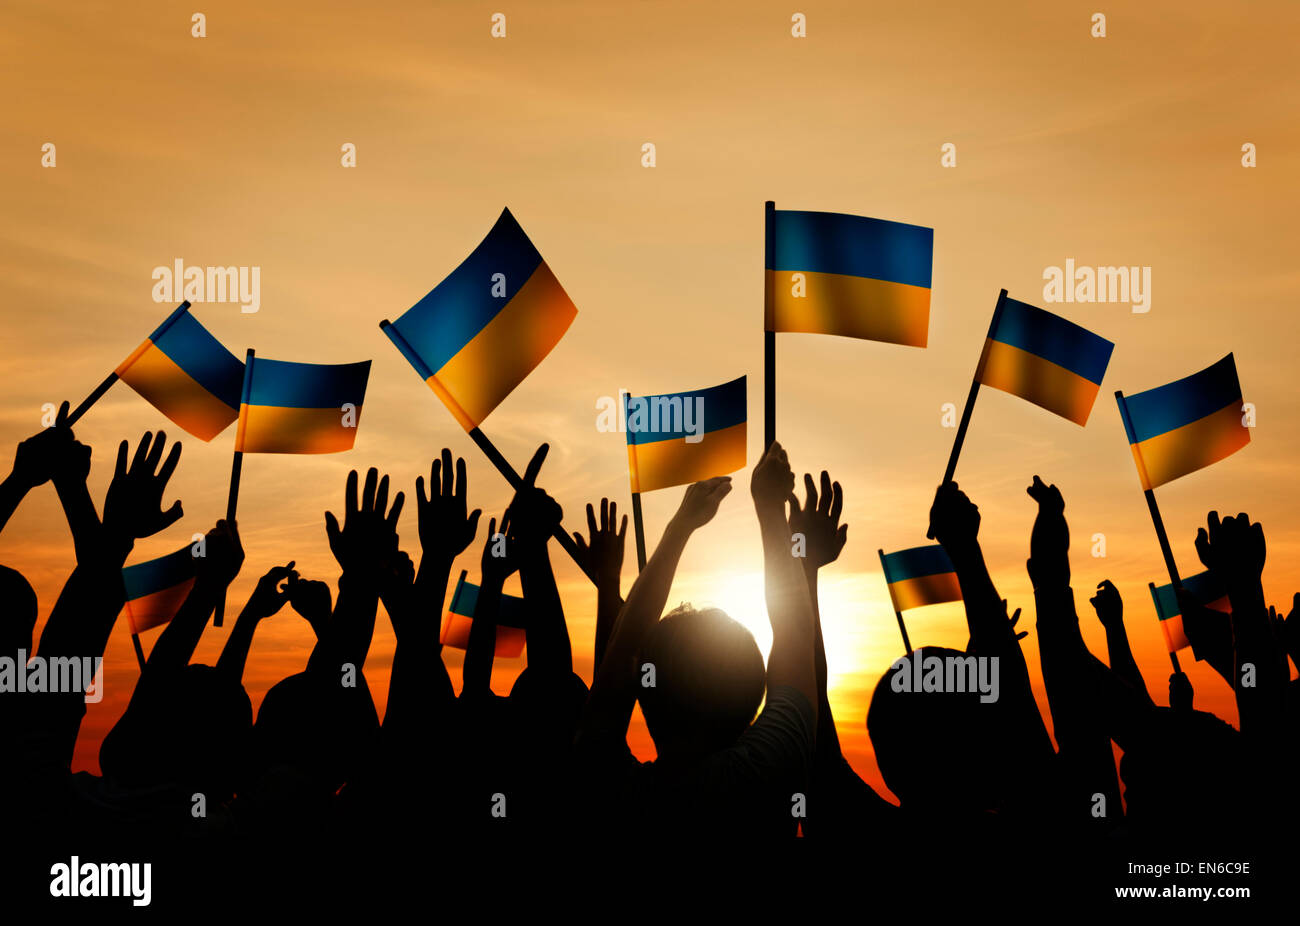 Group of People Waving Ukranian Flags in Back Lit - Stock Image